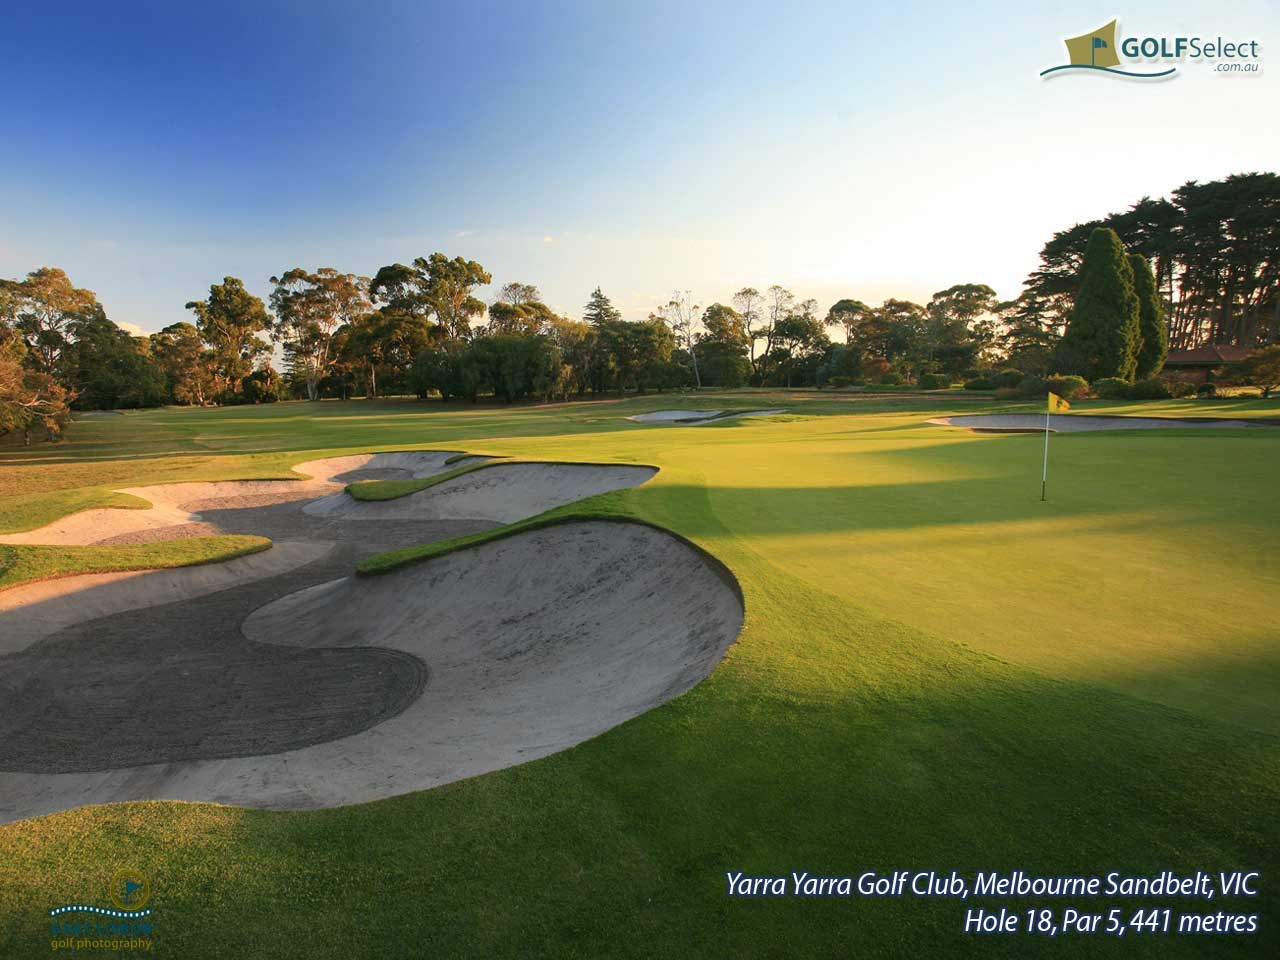 Yarra Yarra Golf Club Hole 18, Par 5, 441 metres